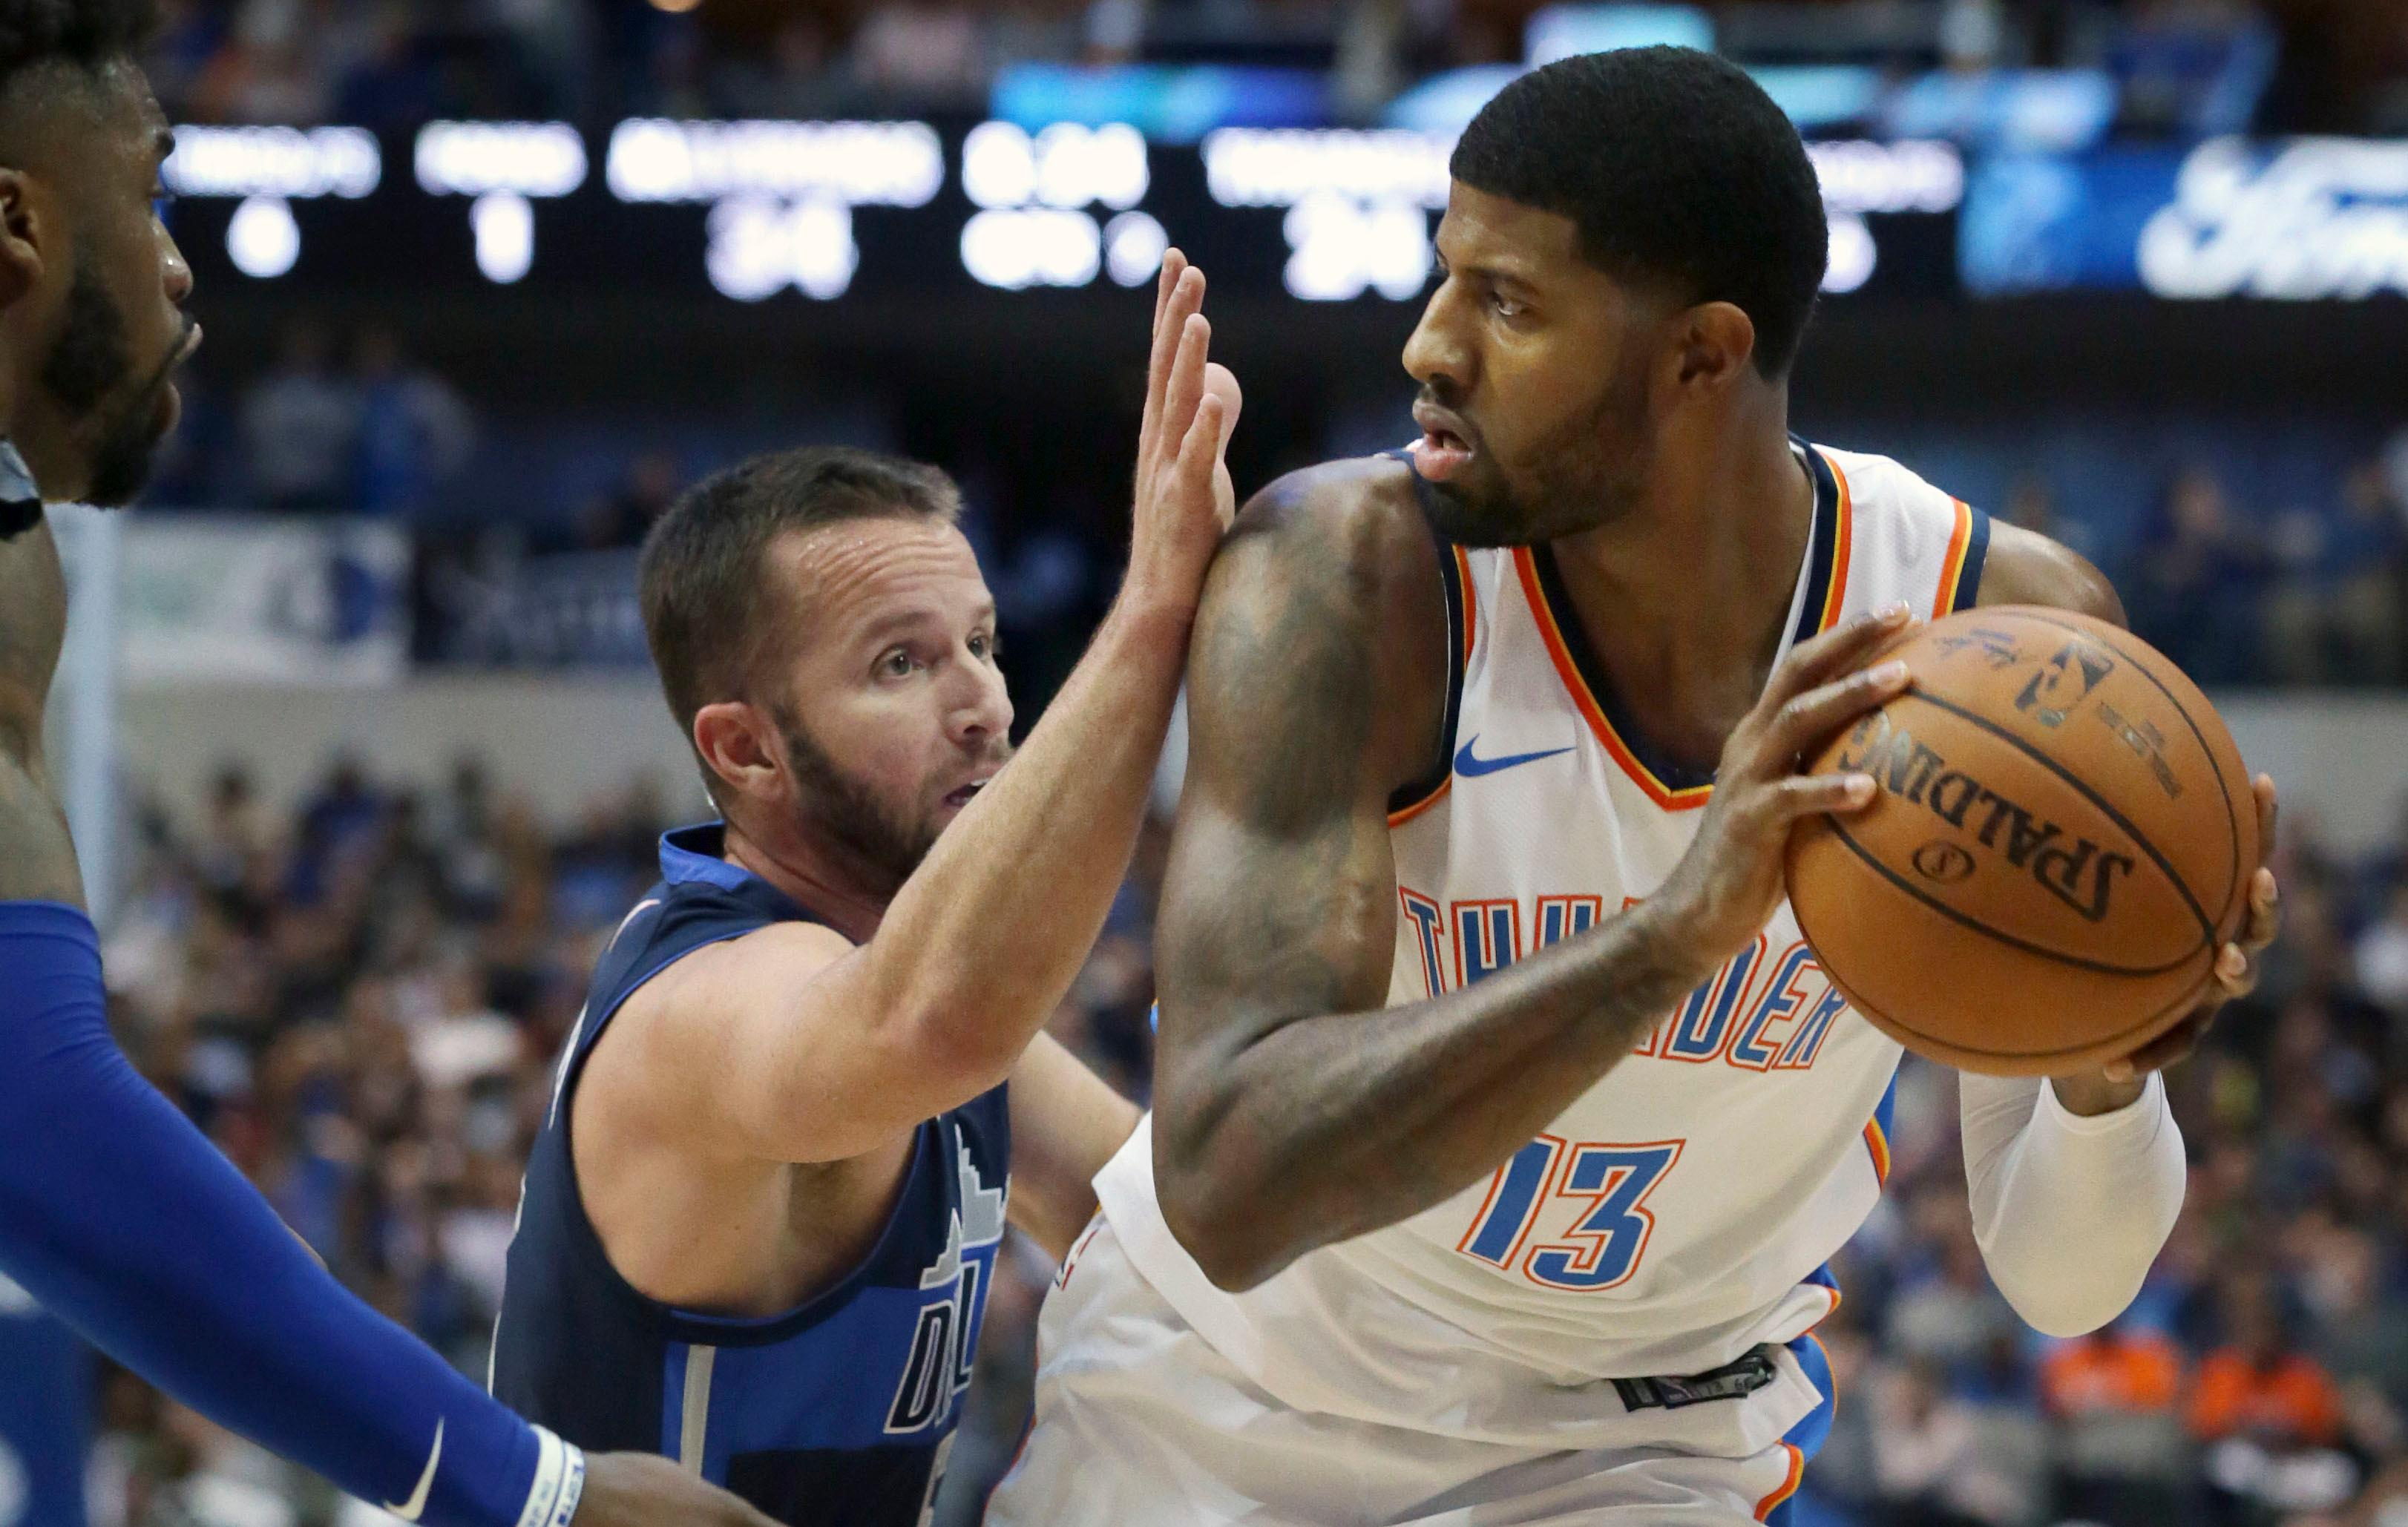 Oklahoma City Thunder forward Paul George (13) looks to pass against Dallas Mavericks defenders J.J. Barea, center, and Wesley Matthews during the first half of an NBA basketball game in Dallas, Saturday, Nov. 25, 2017. (AP Photo/LM Otero)